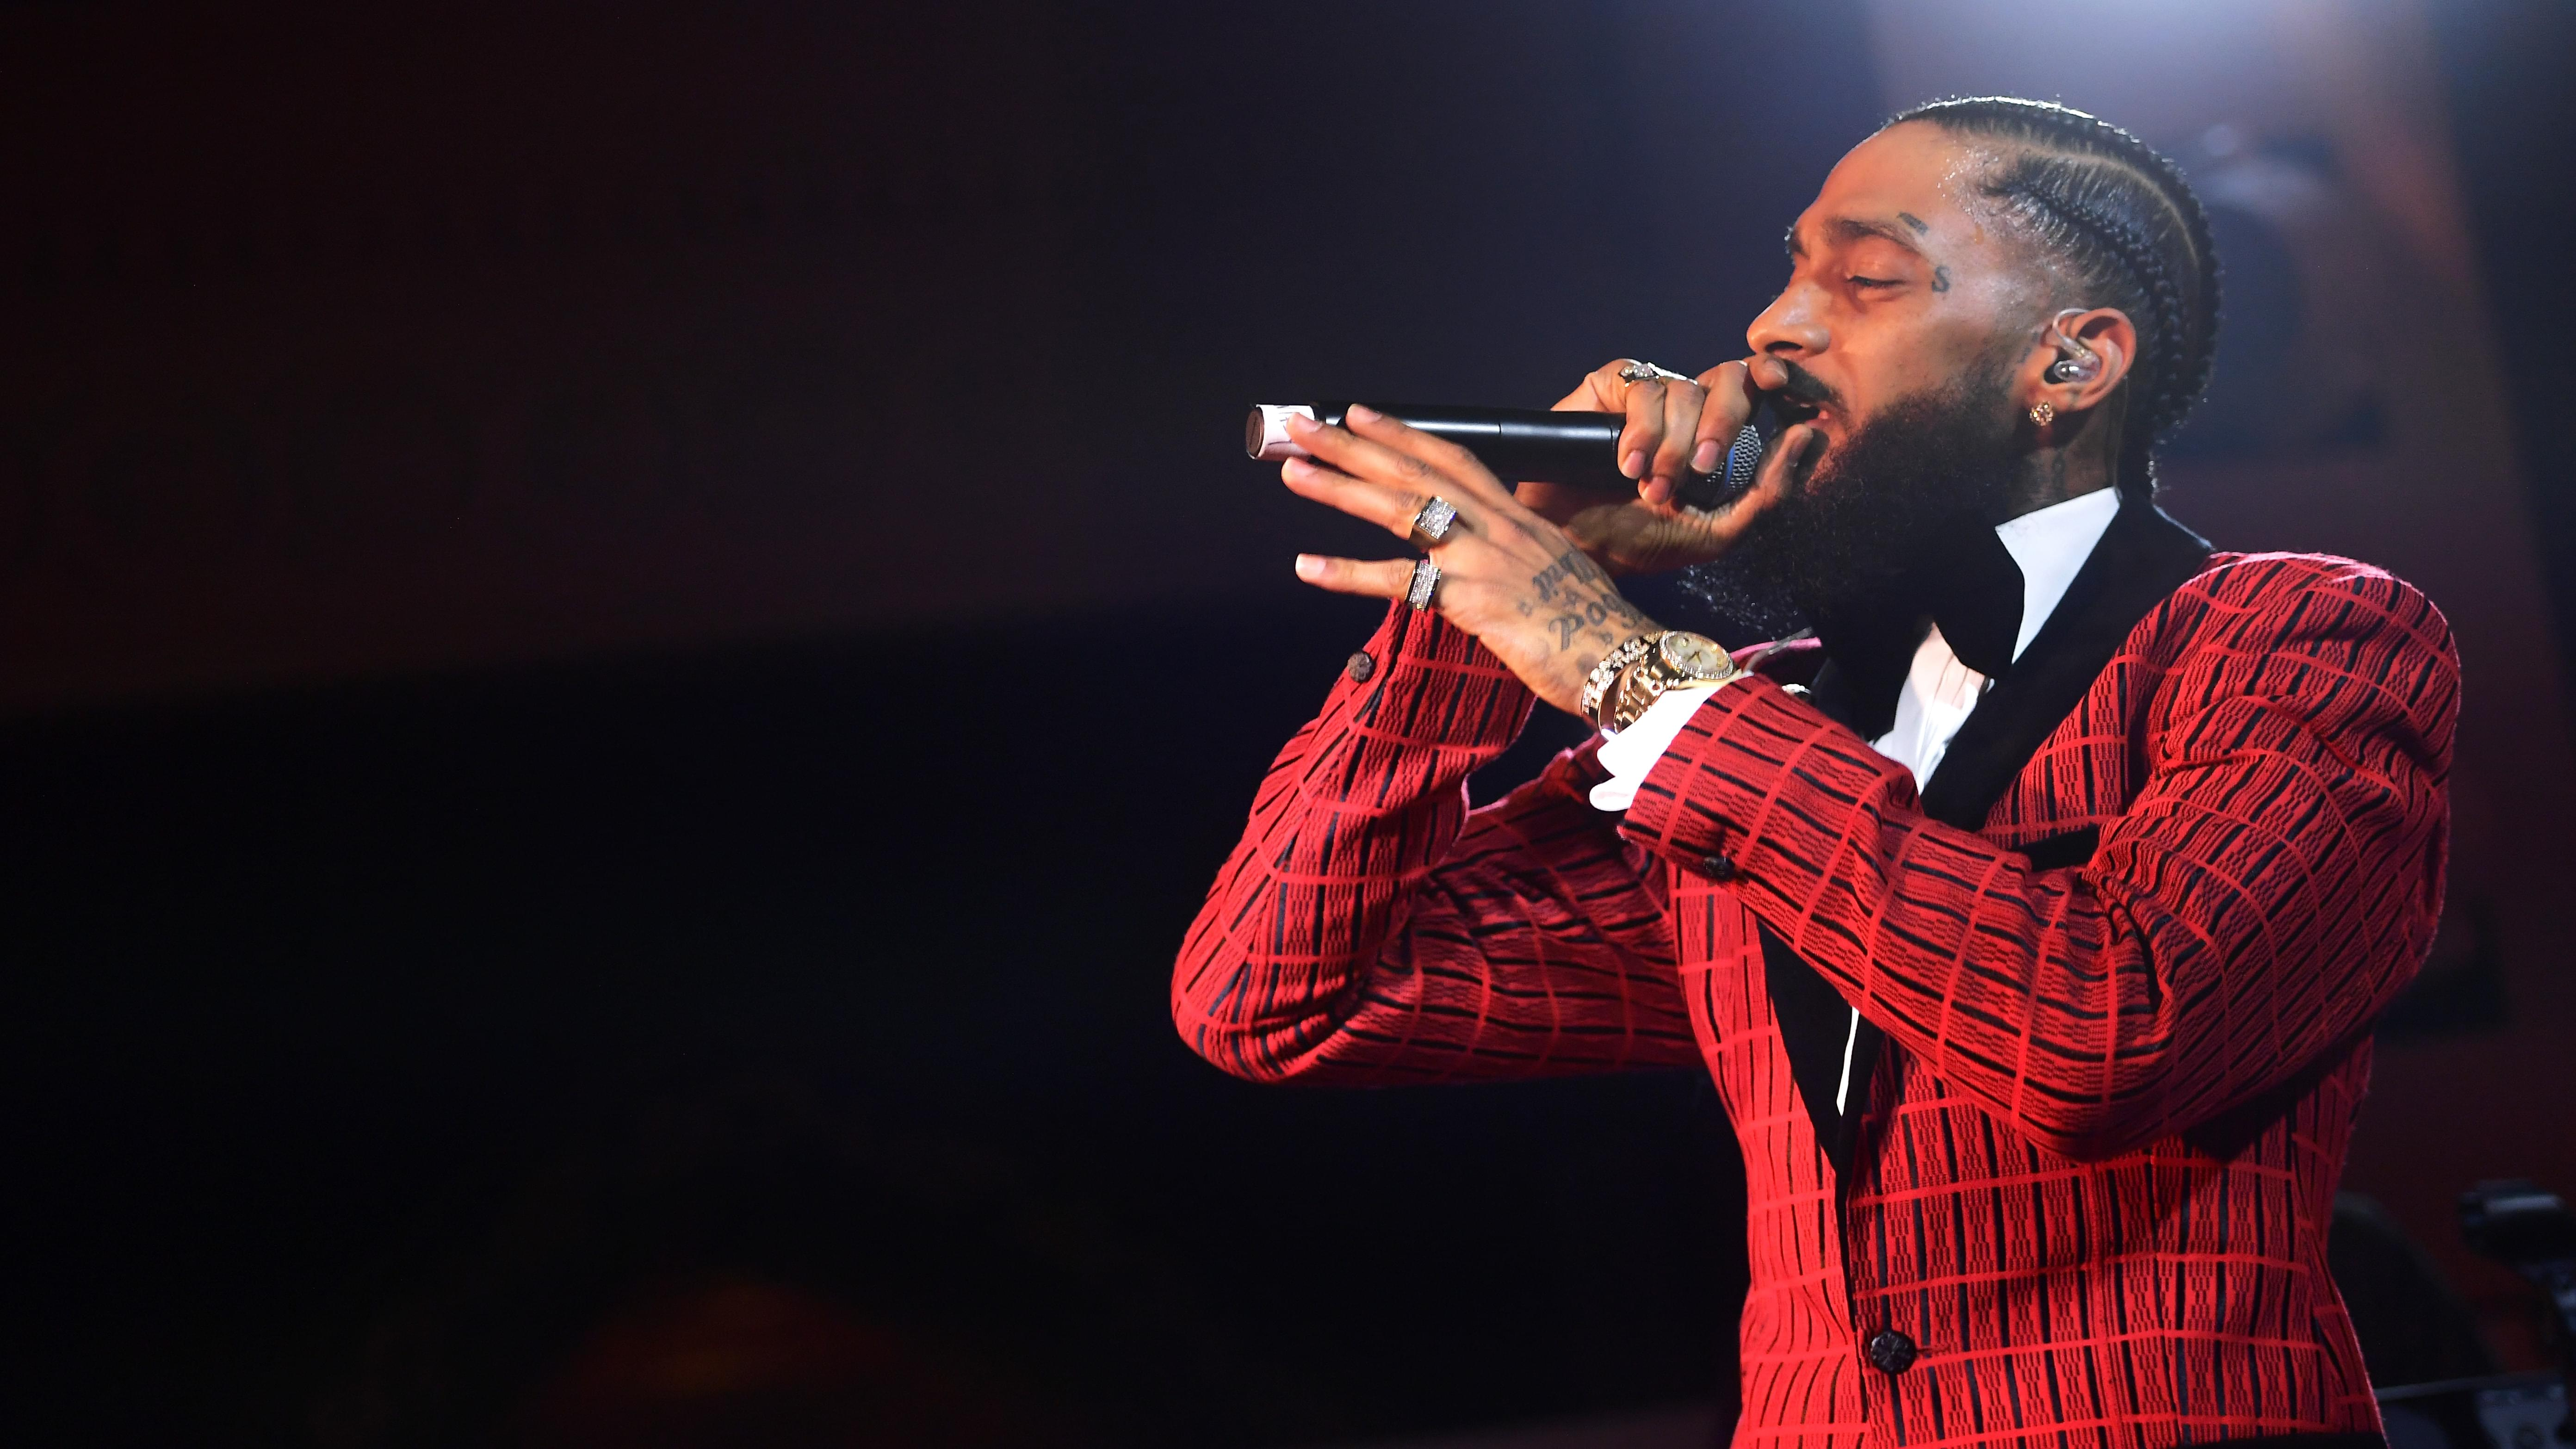 Nipsey Hussle to be Honored Posthumously with the Humanitarian Award at the 2019 BET Awards